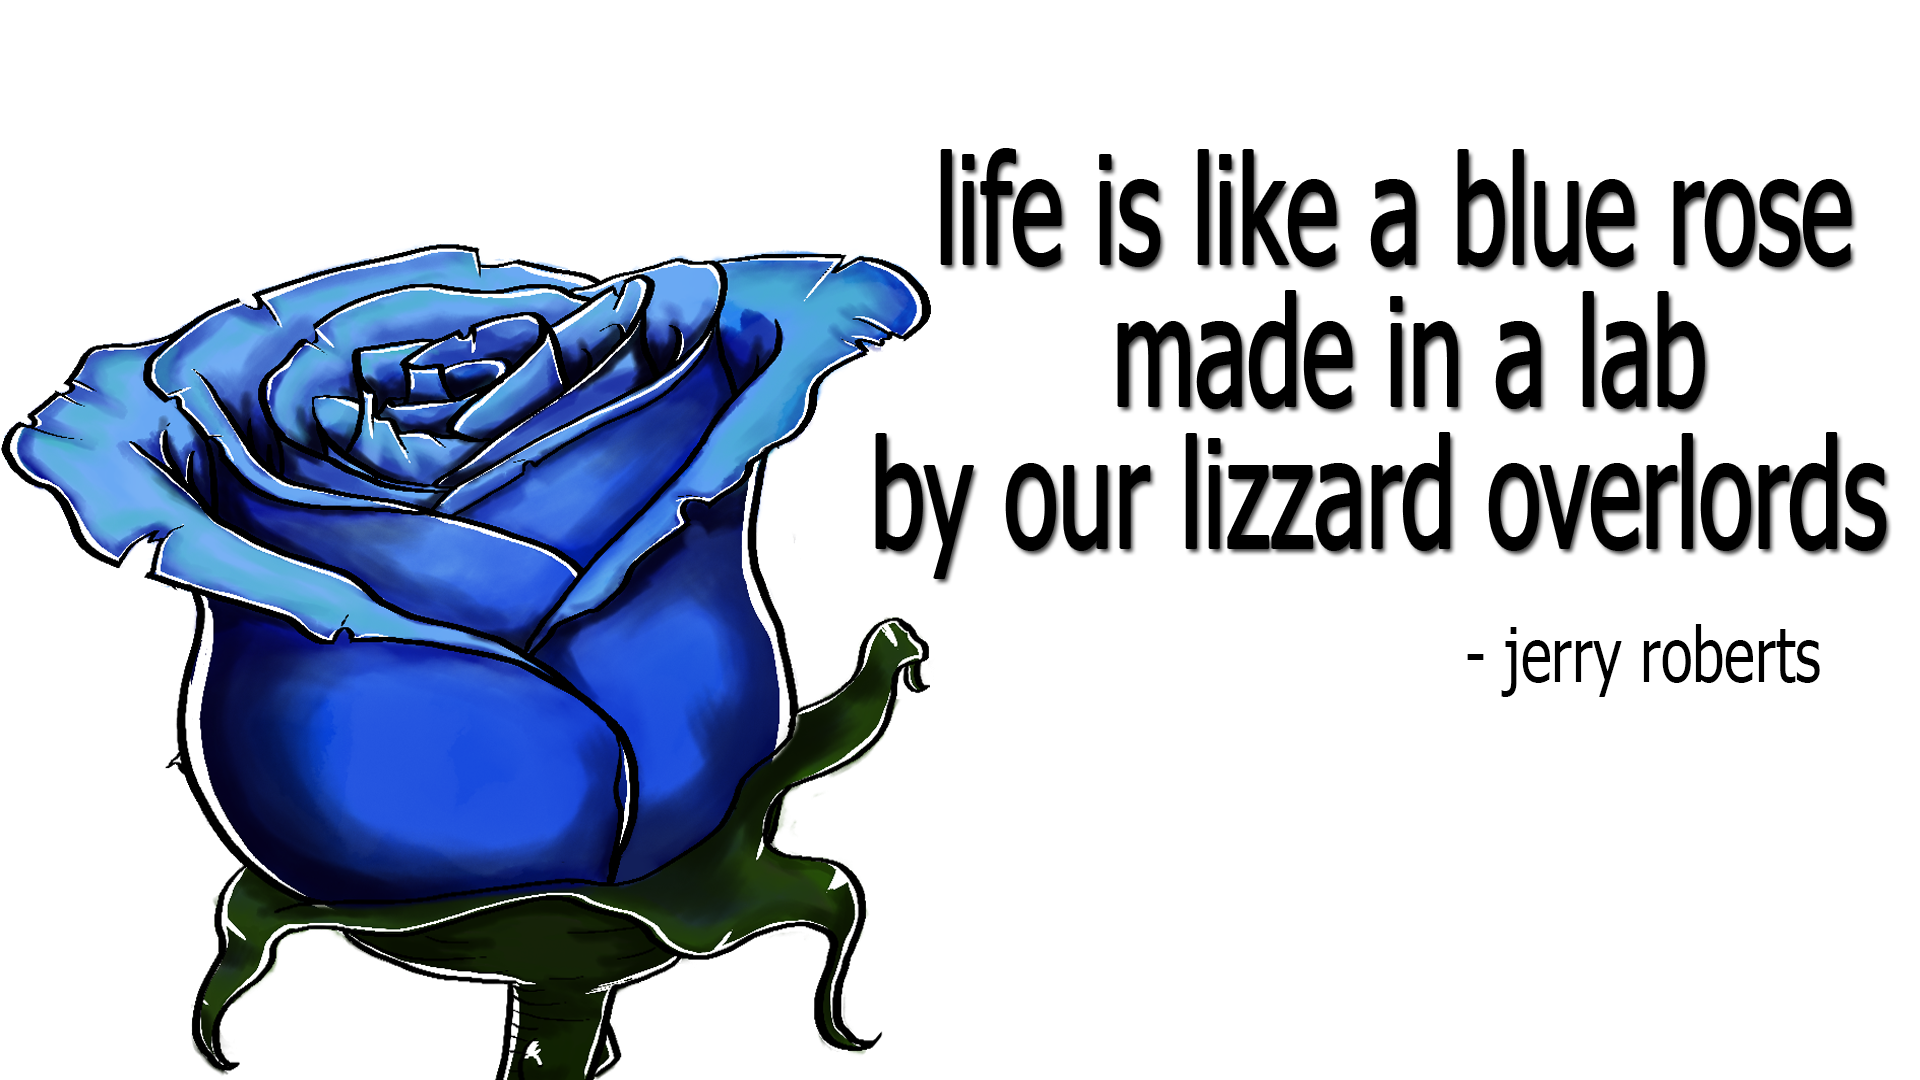 i made a true quote best art!